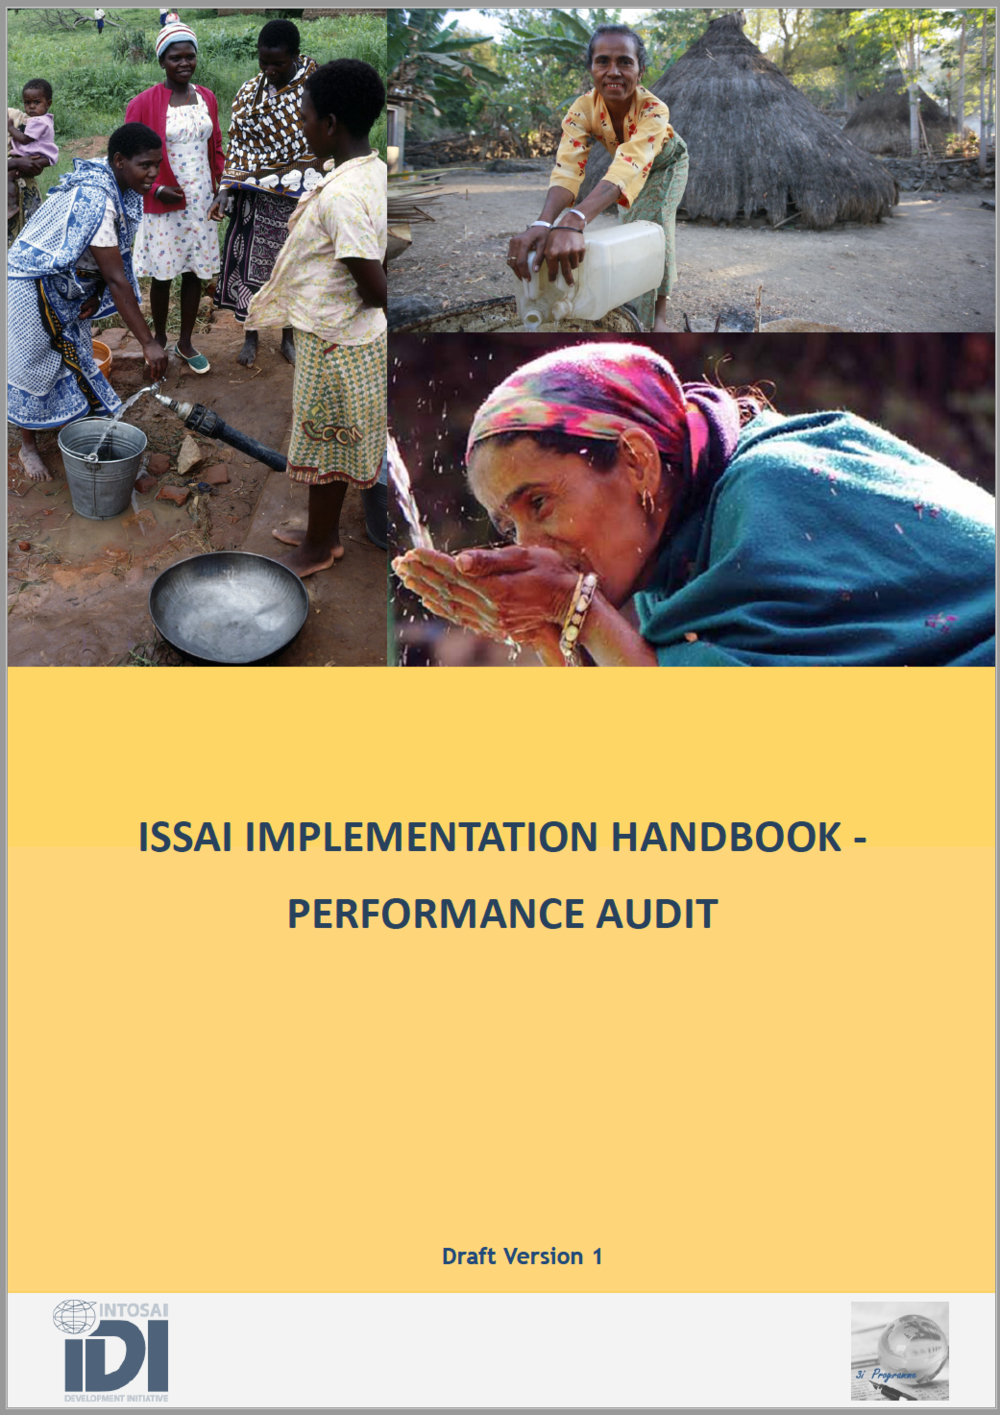 ISSAI Implementation Handbook